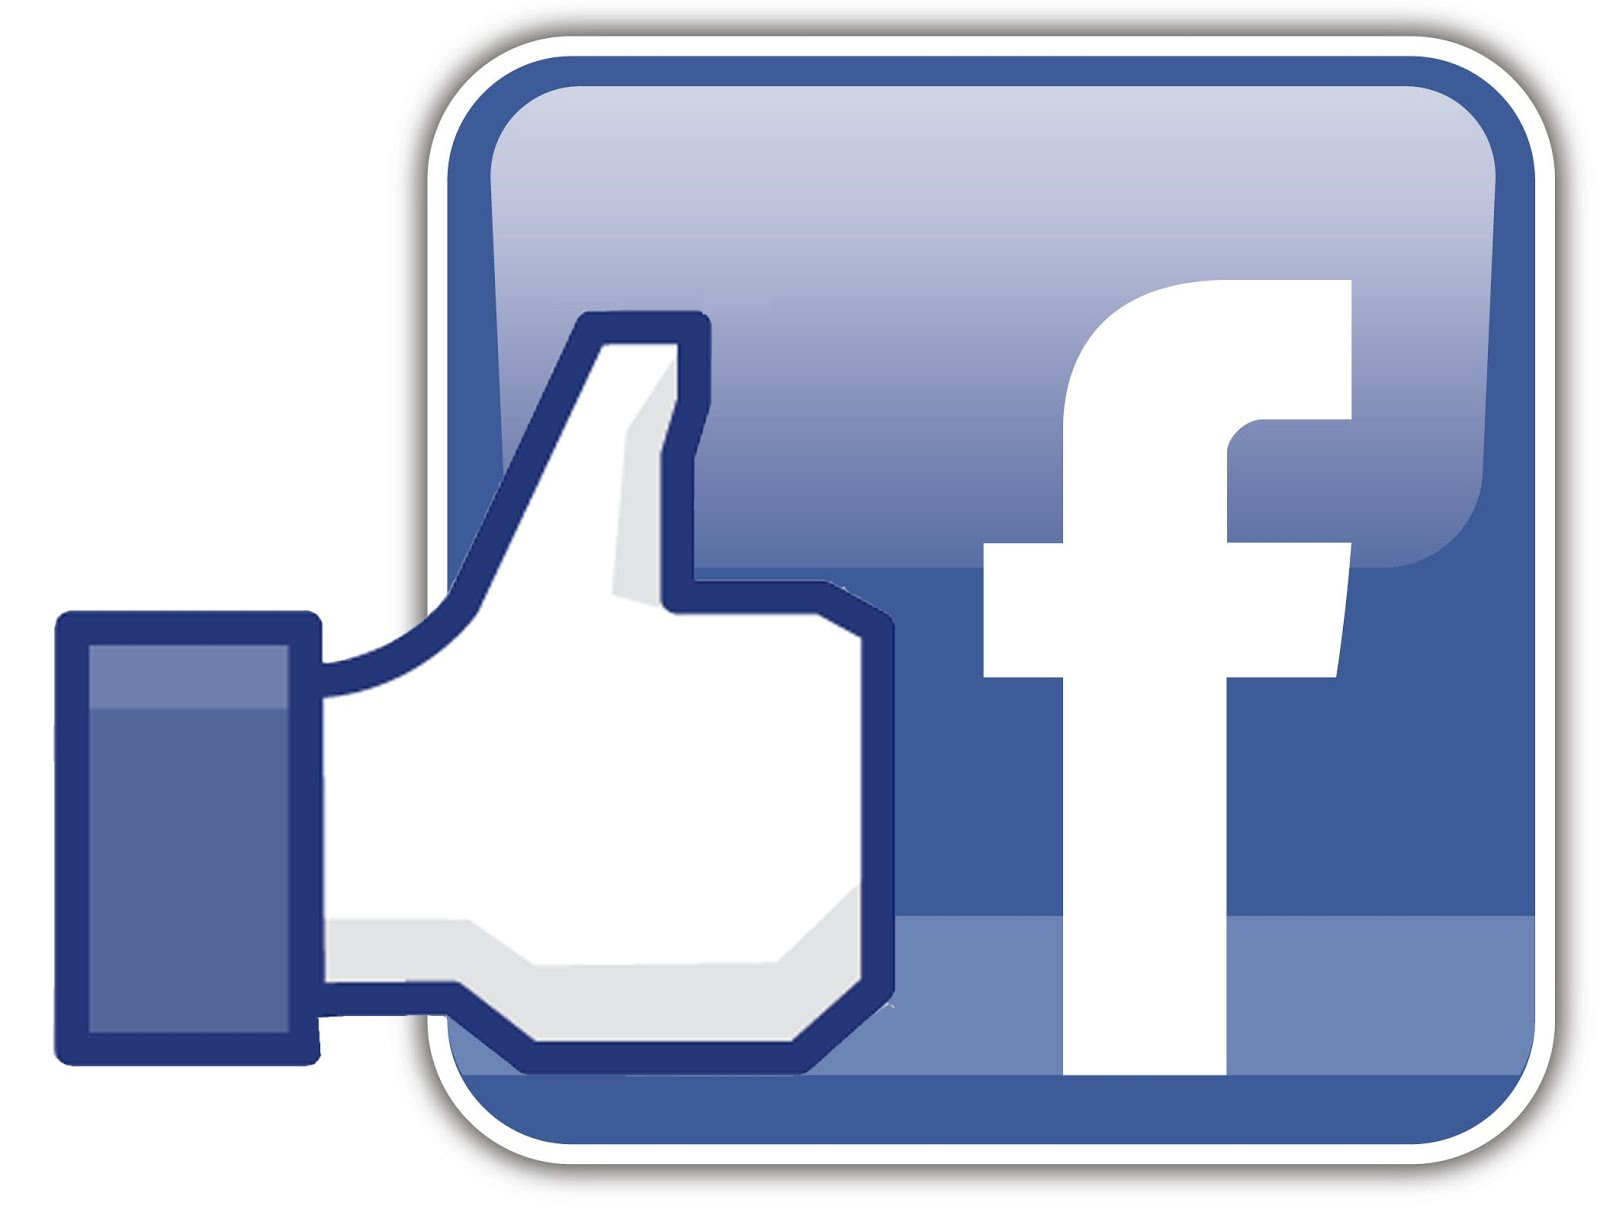 Wrightstown Farmers Market Facebook page